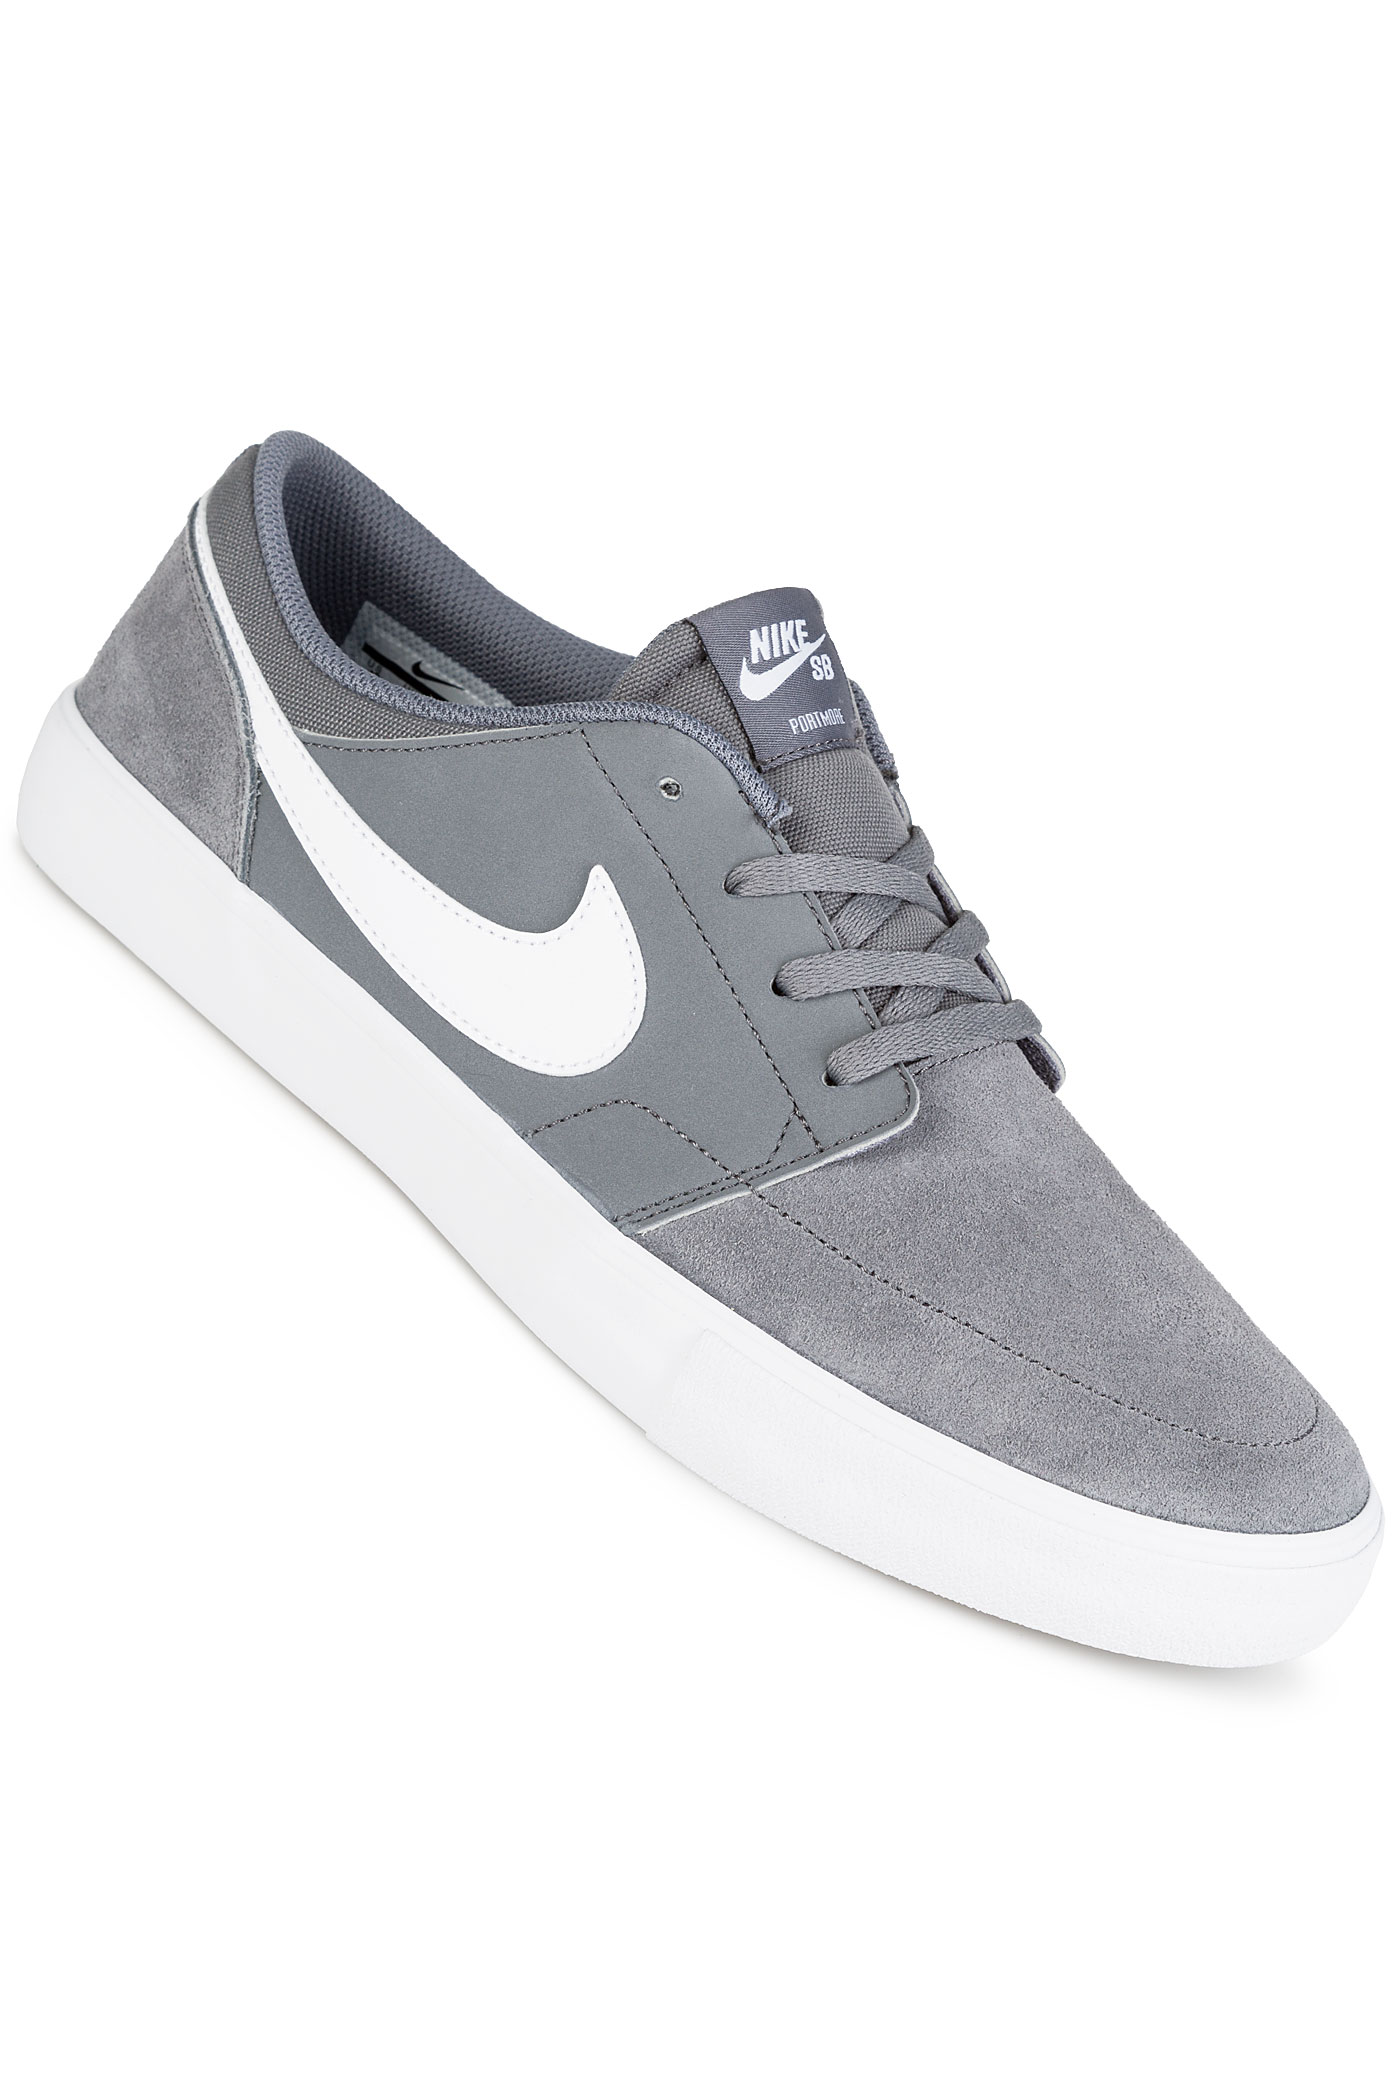 nike sb solarsoft portmore ii zapatilla cool grey white comprar en skatedeluxe. Black Bedroom Furniture Sets. Home Design Ideas